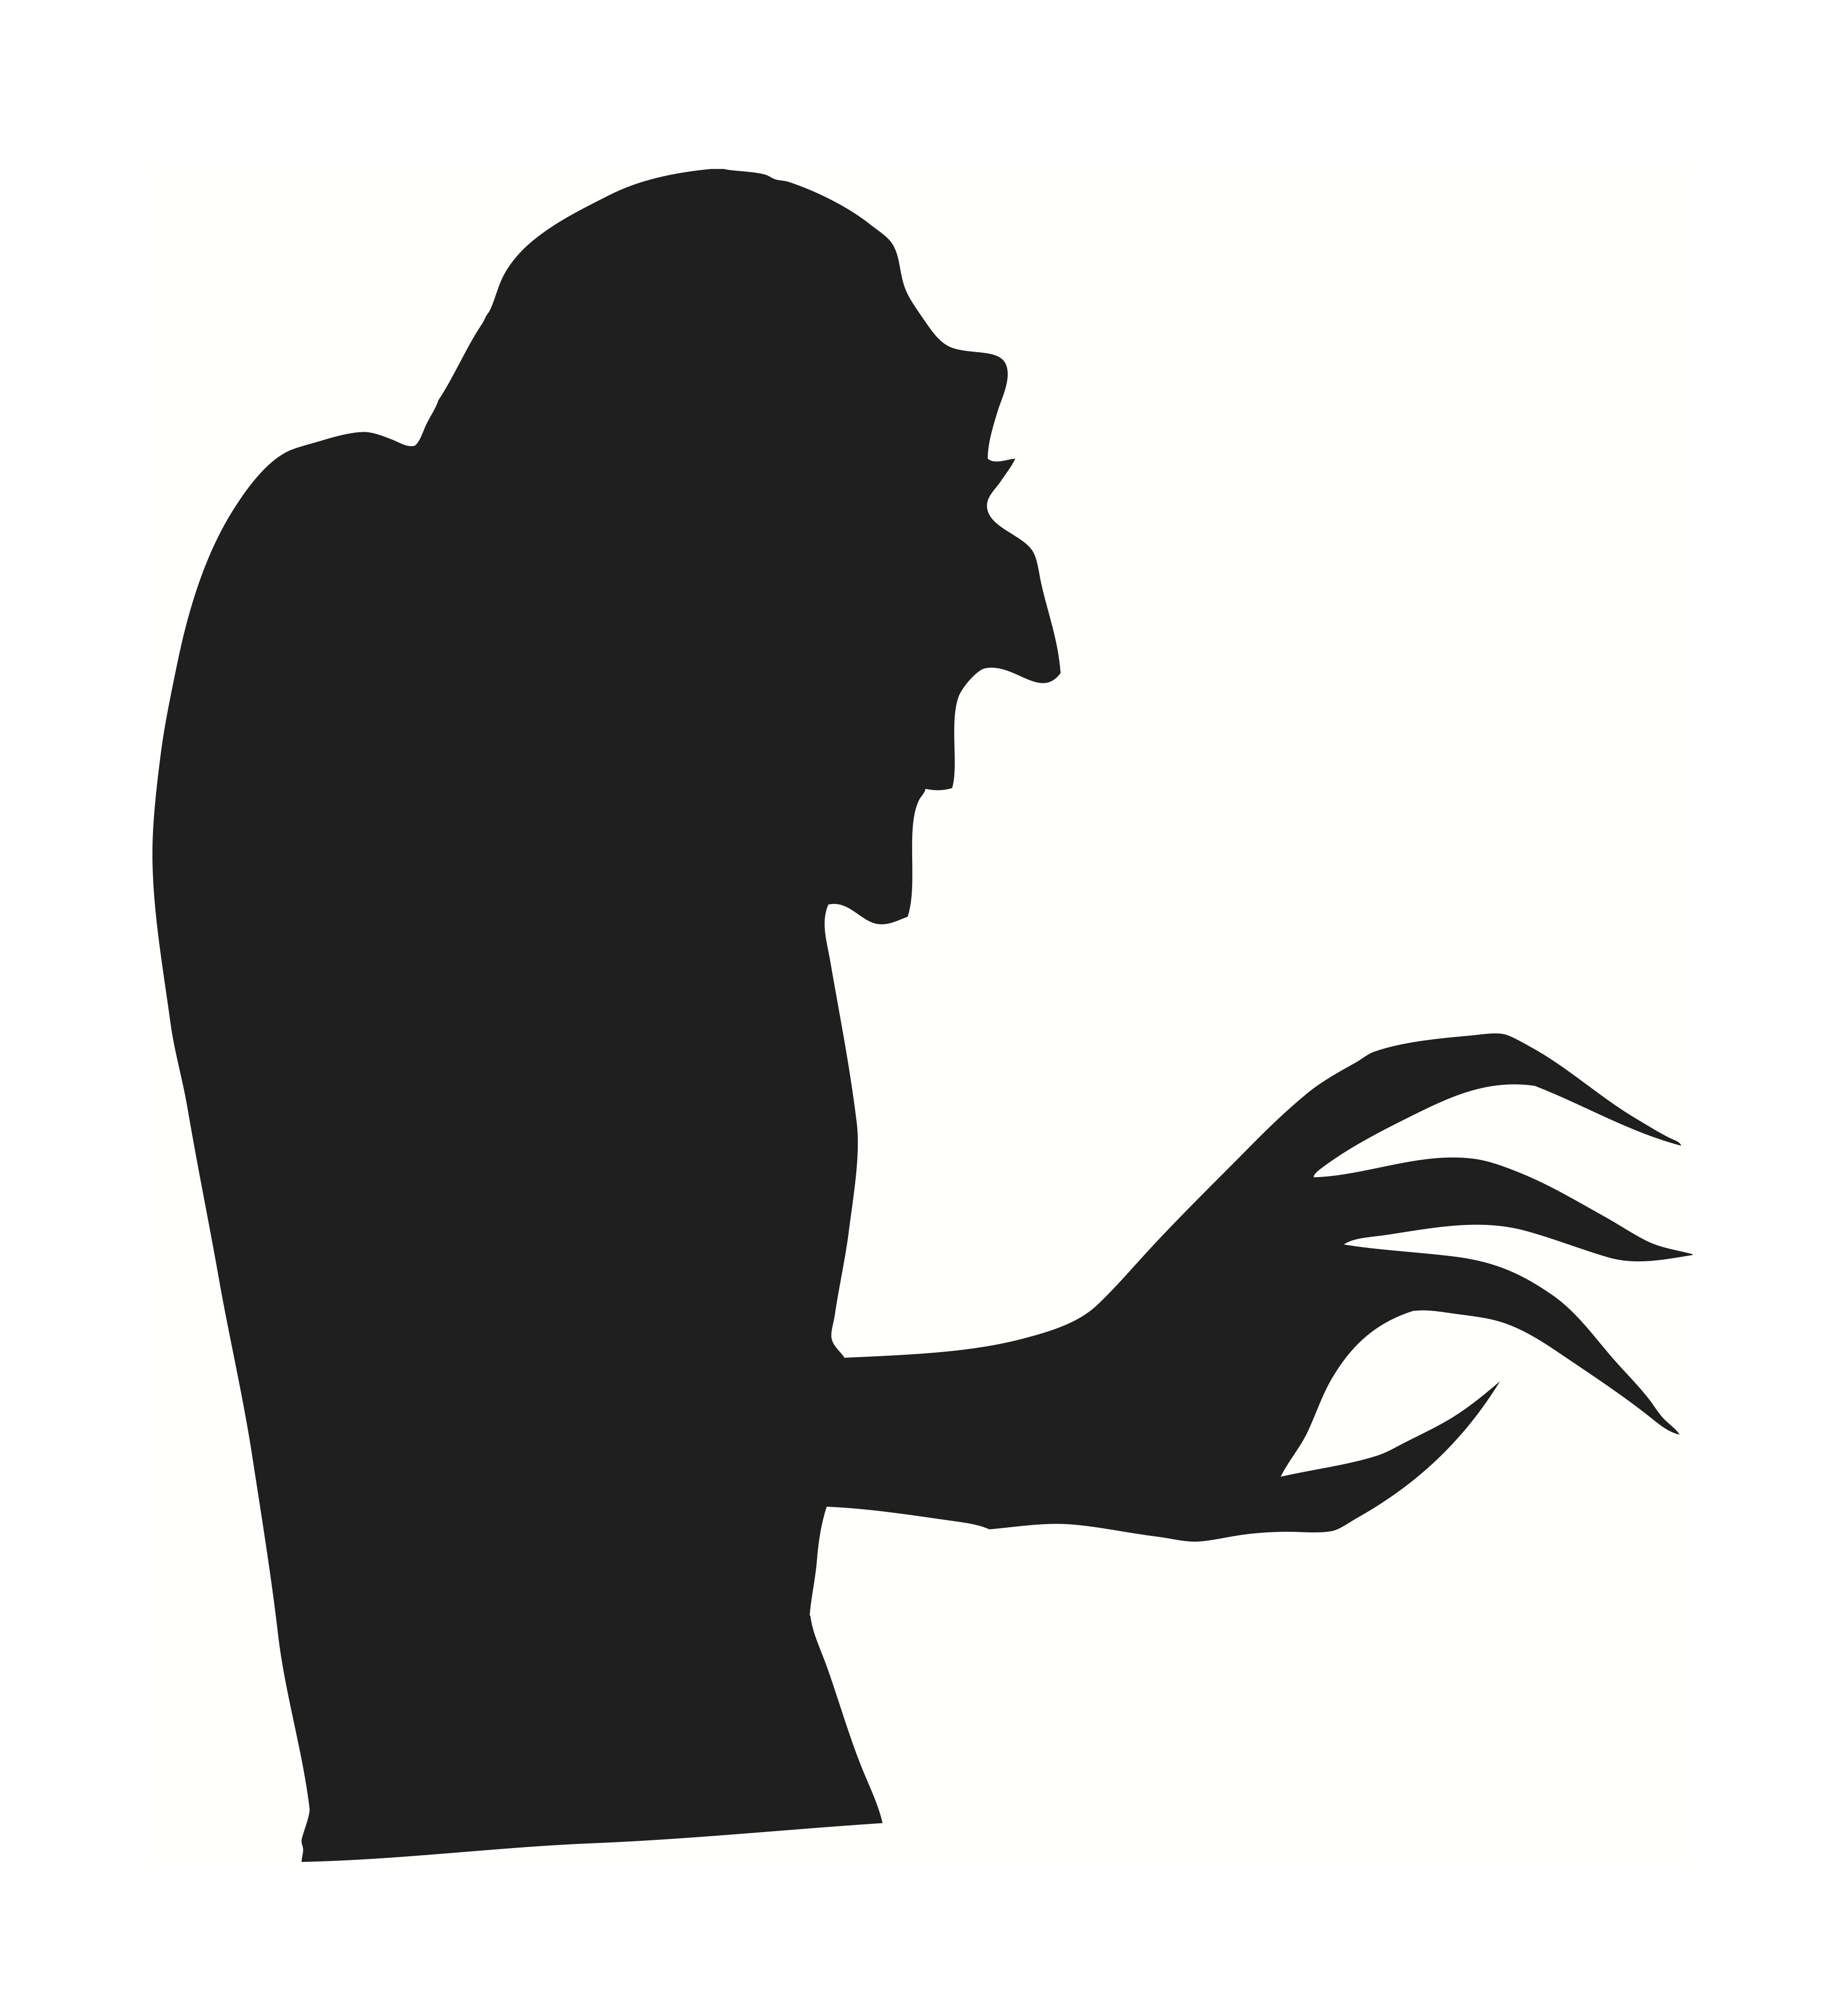 Free House Design Online Vampire Silhouette At Getdrawings Com Free For Personal